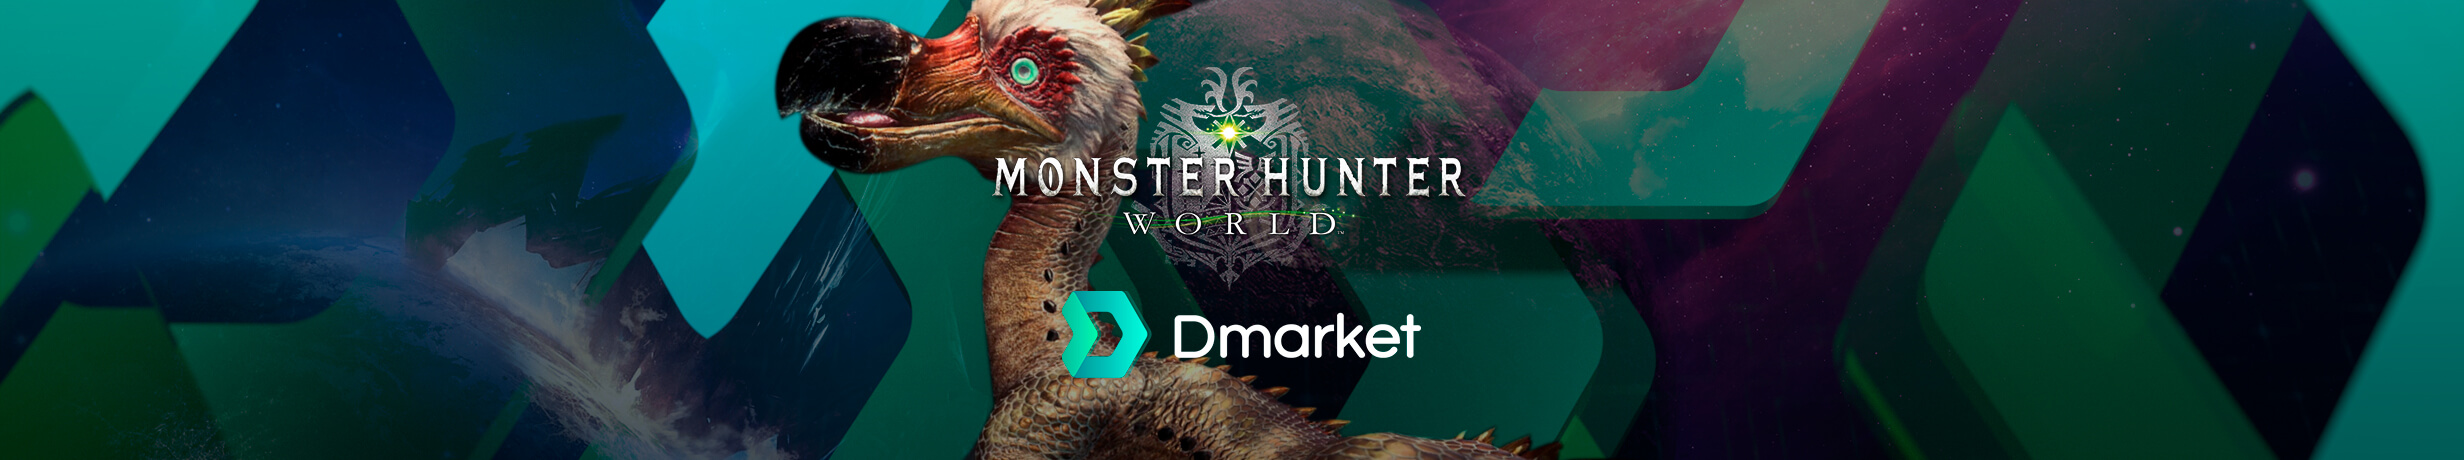 Monster Hunter World – Weapons and Monsters Overview